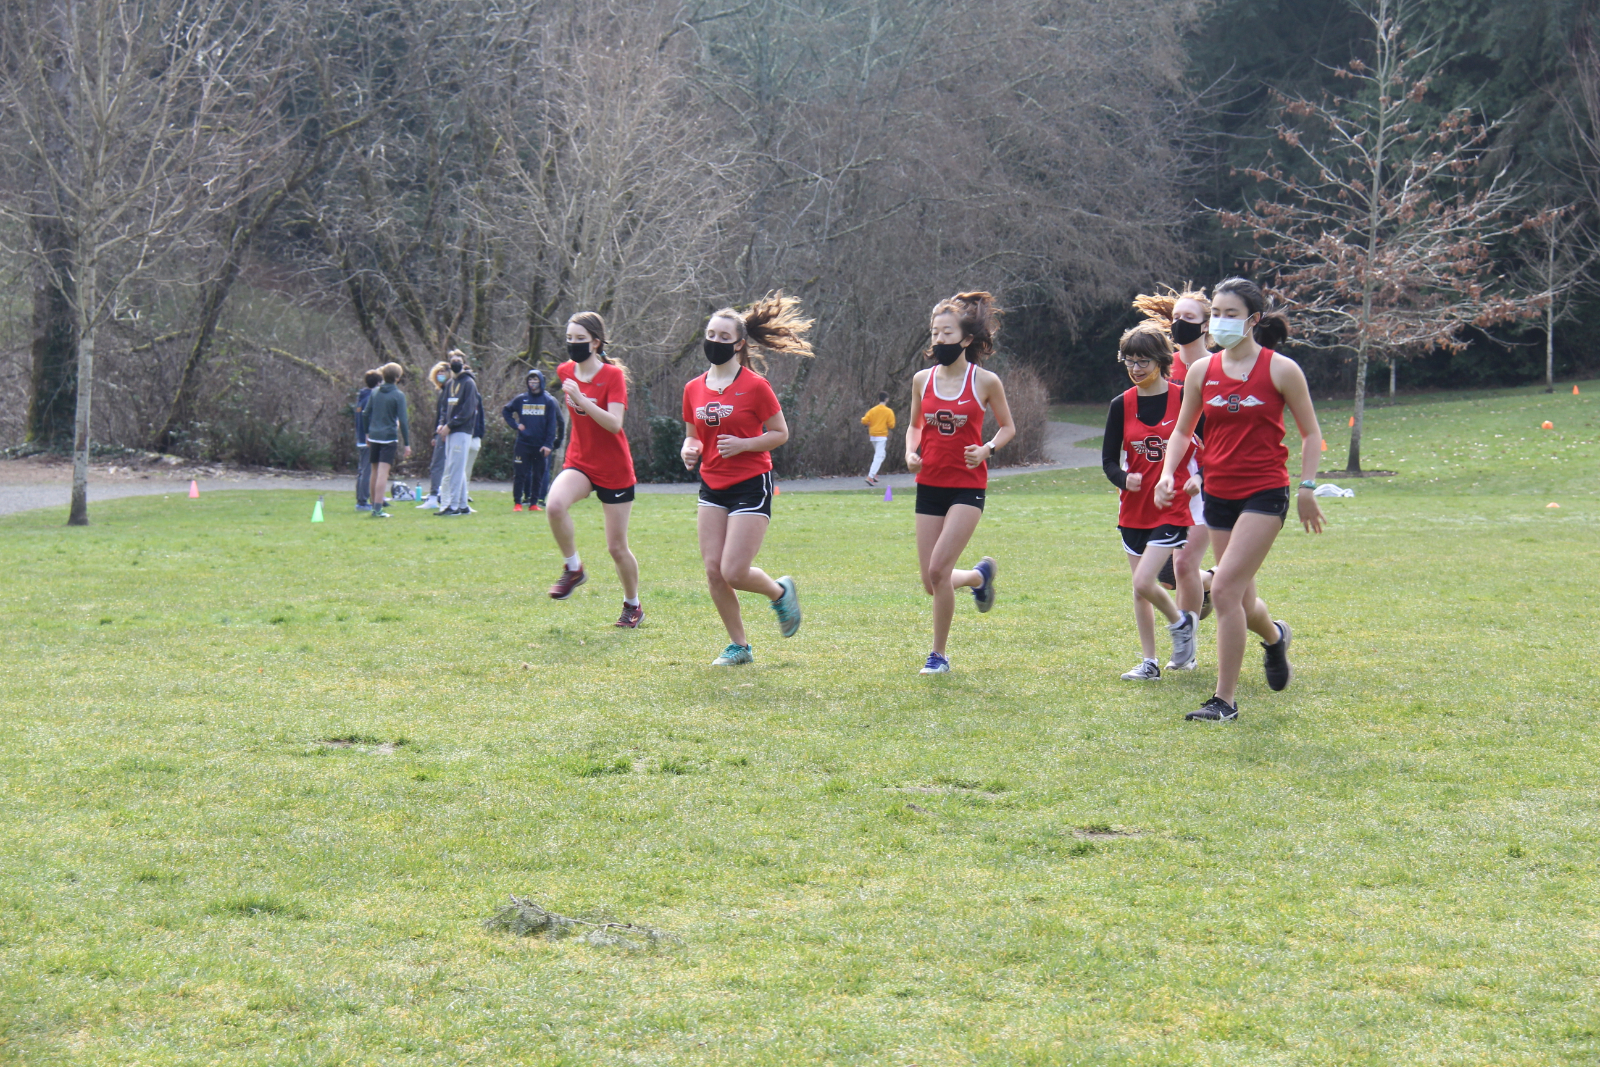 3/13 2 Mile Race vs. Bellevue